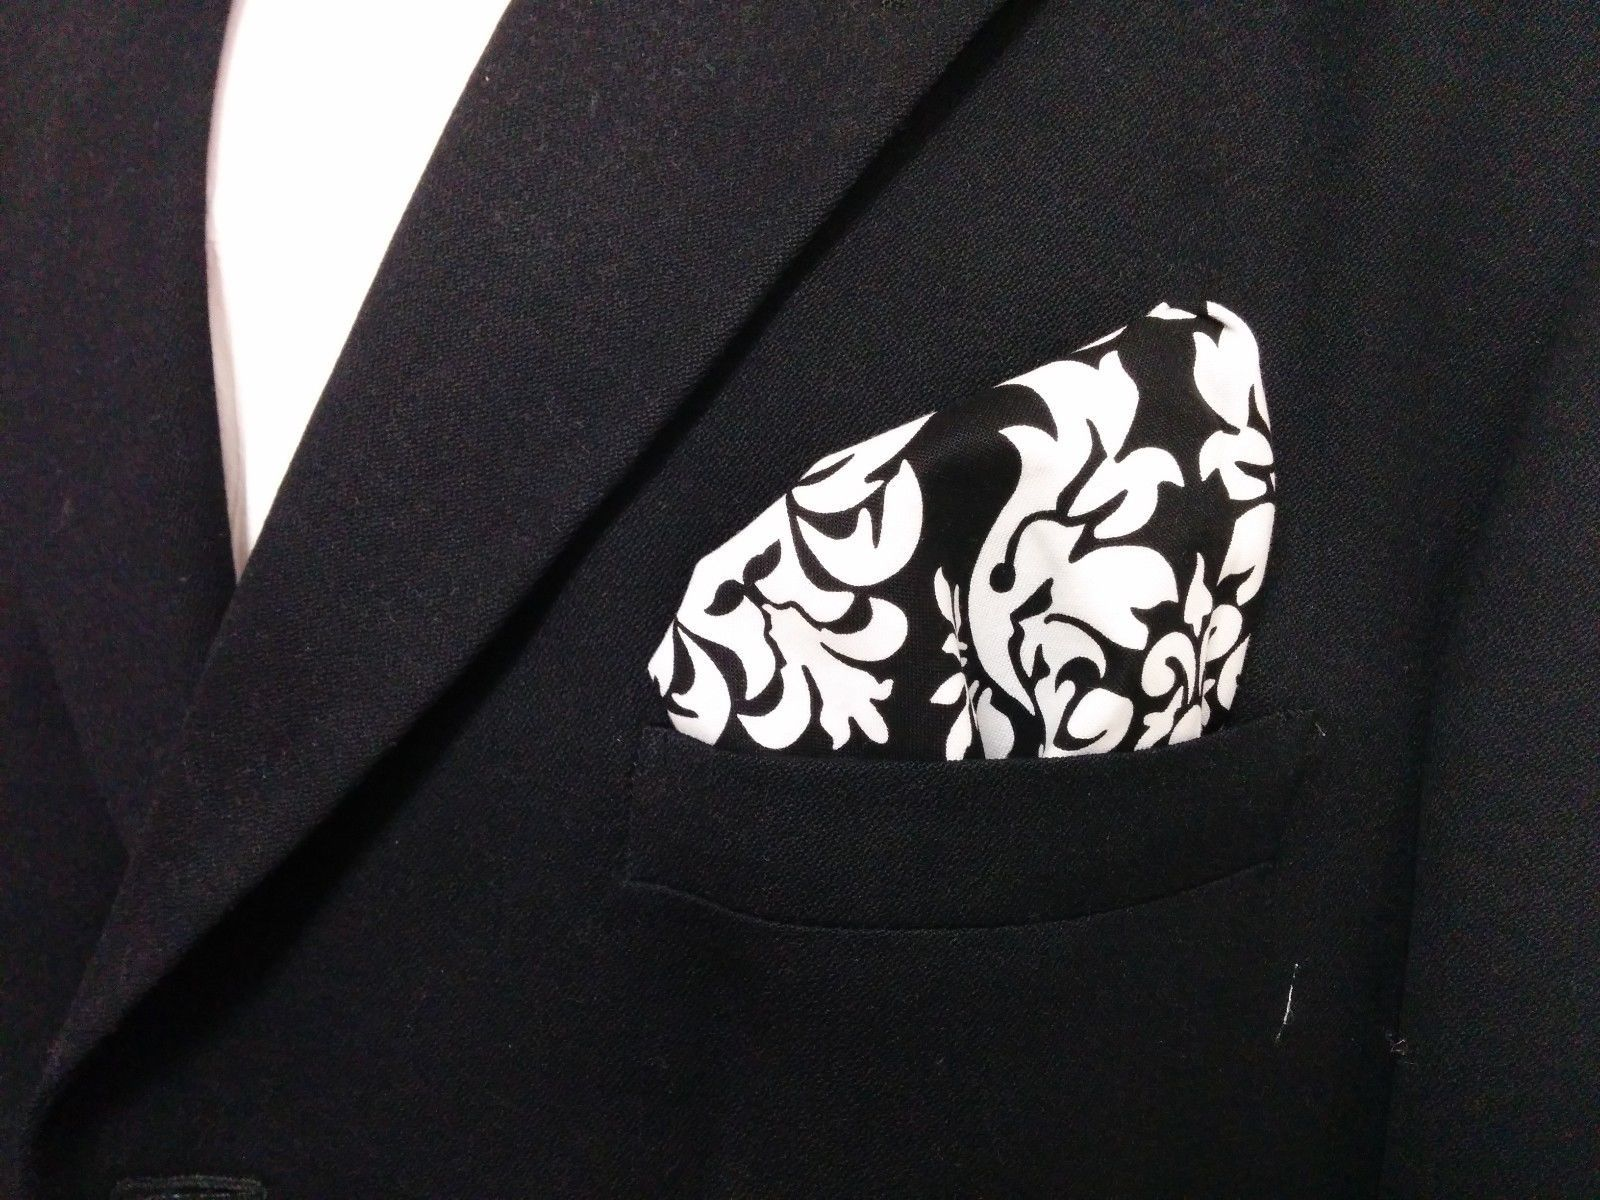 Damask Hanky Pocket Square Tuxedo Dandy Black White Wedding Bridal Groomsmen